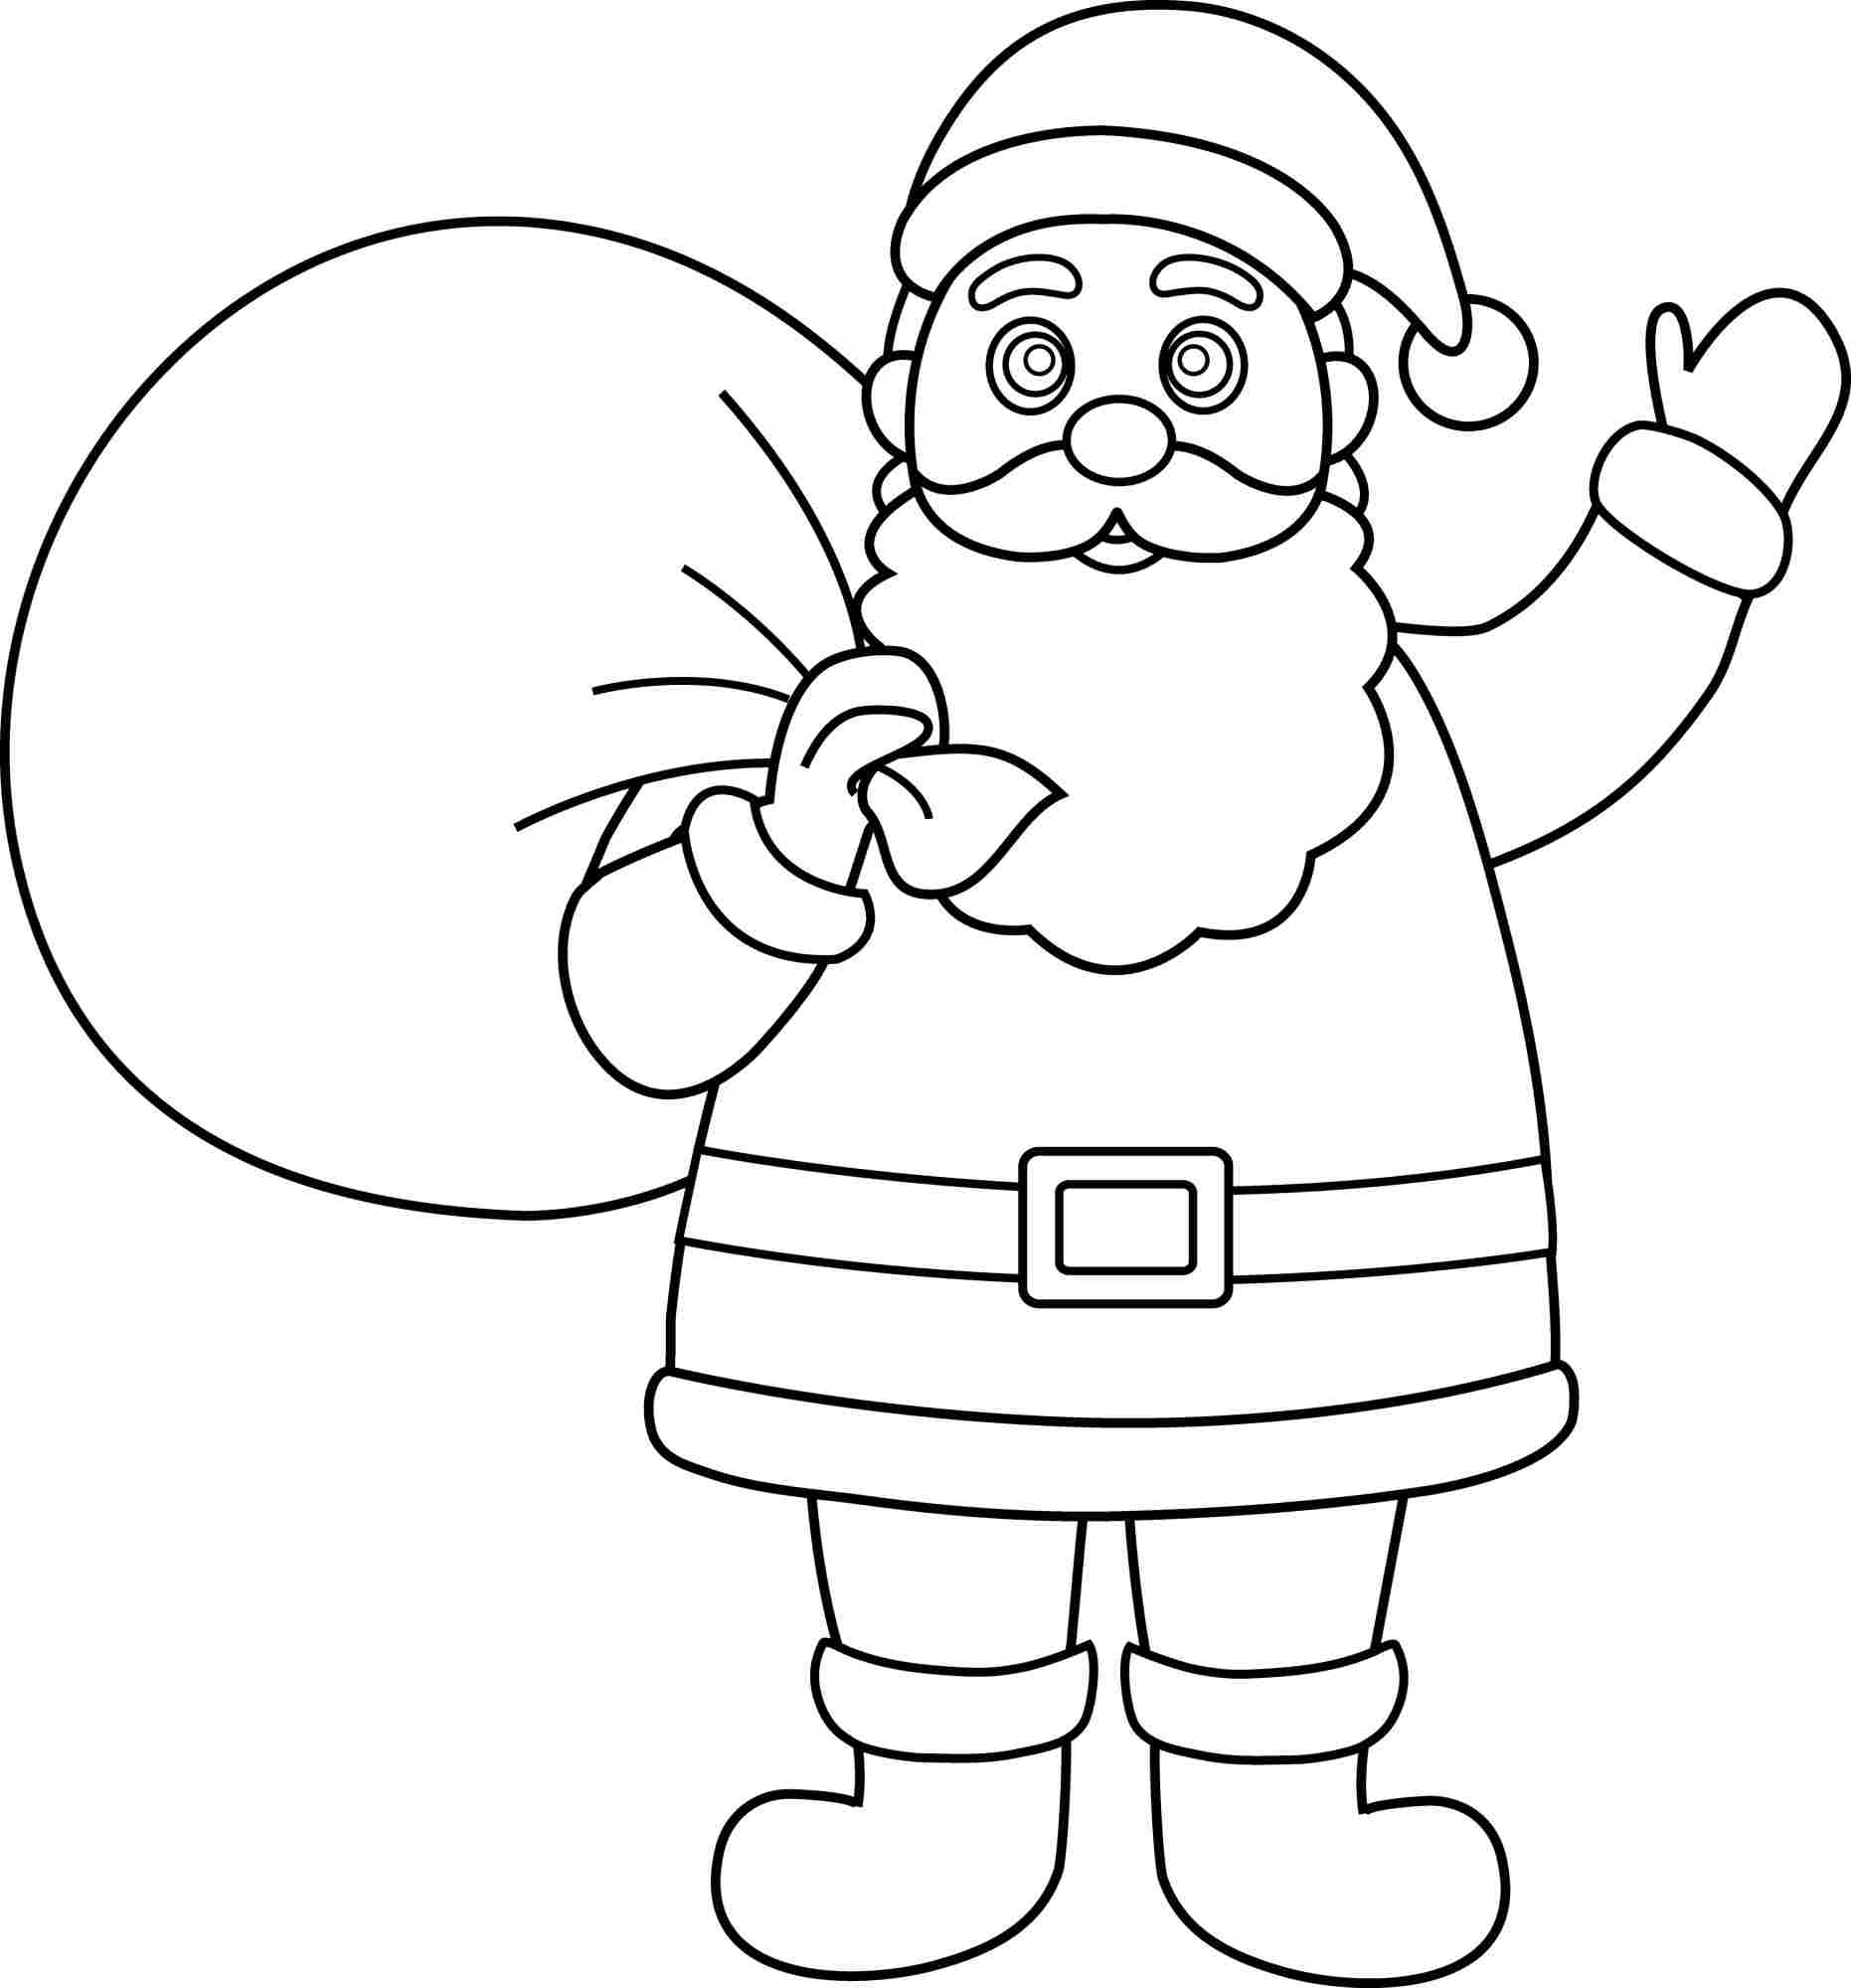 Santa claus coloring pages car interior design for Santa coloring pages free